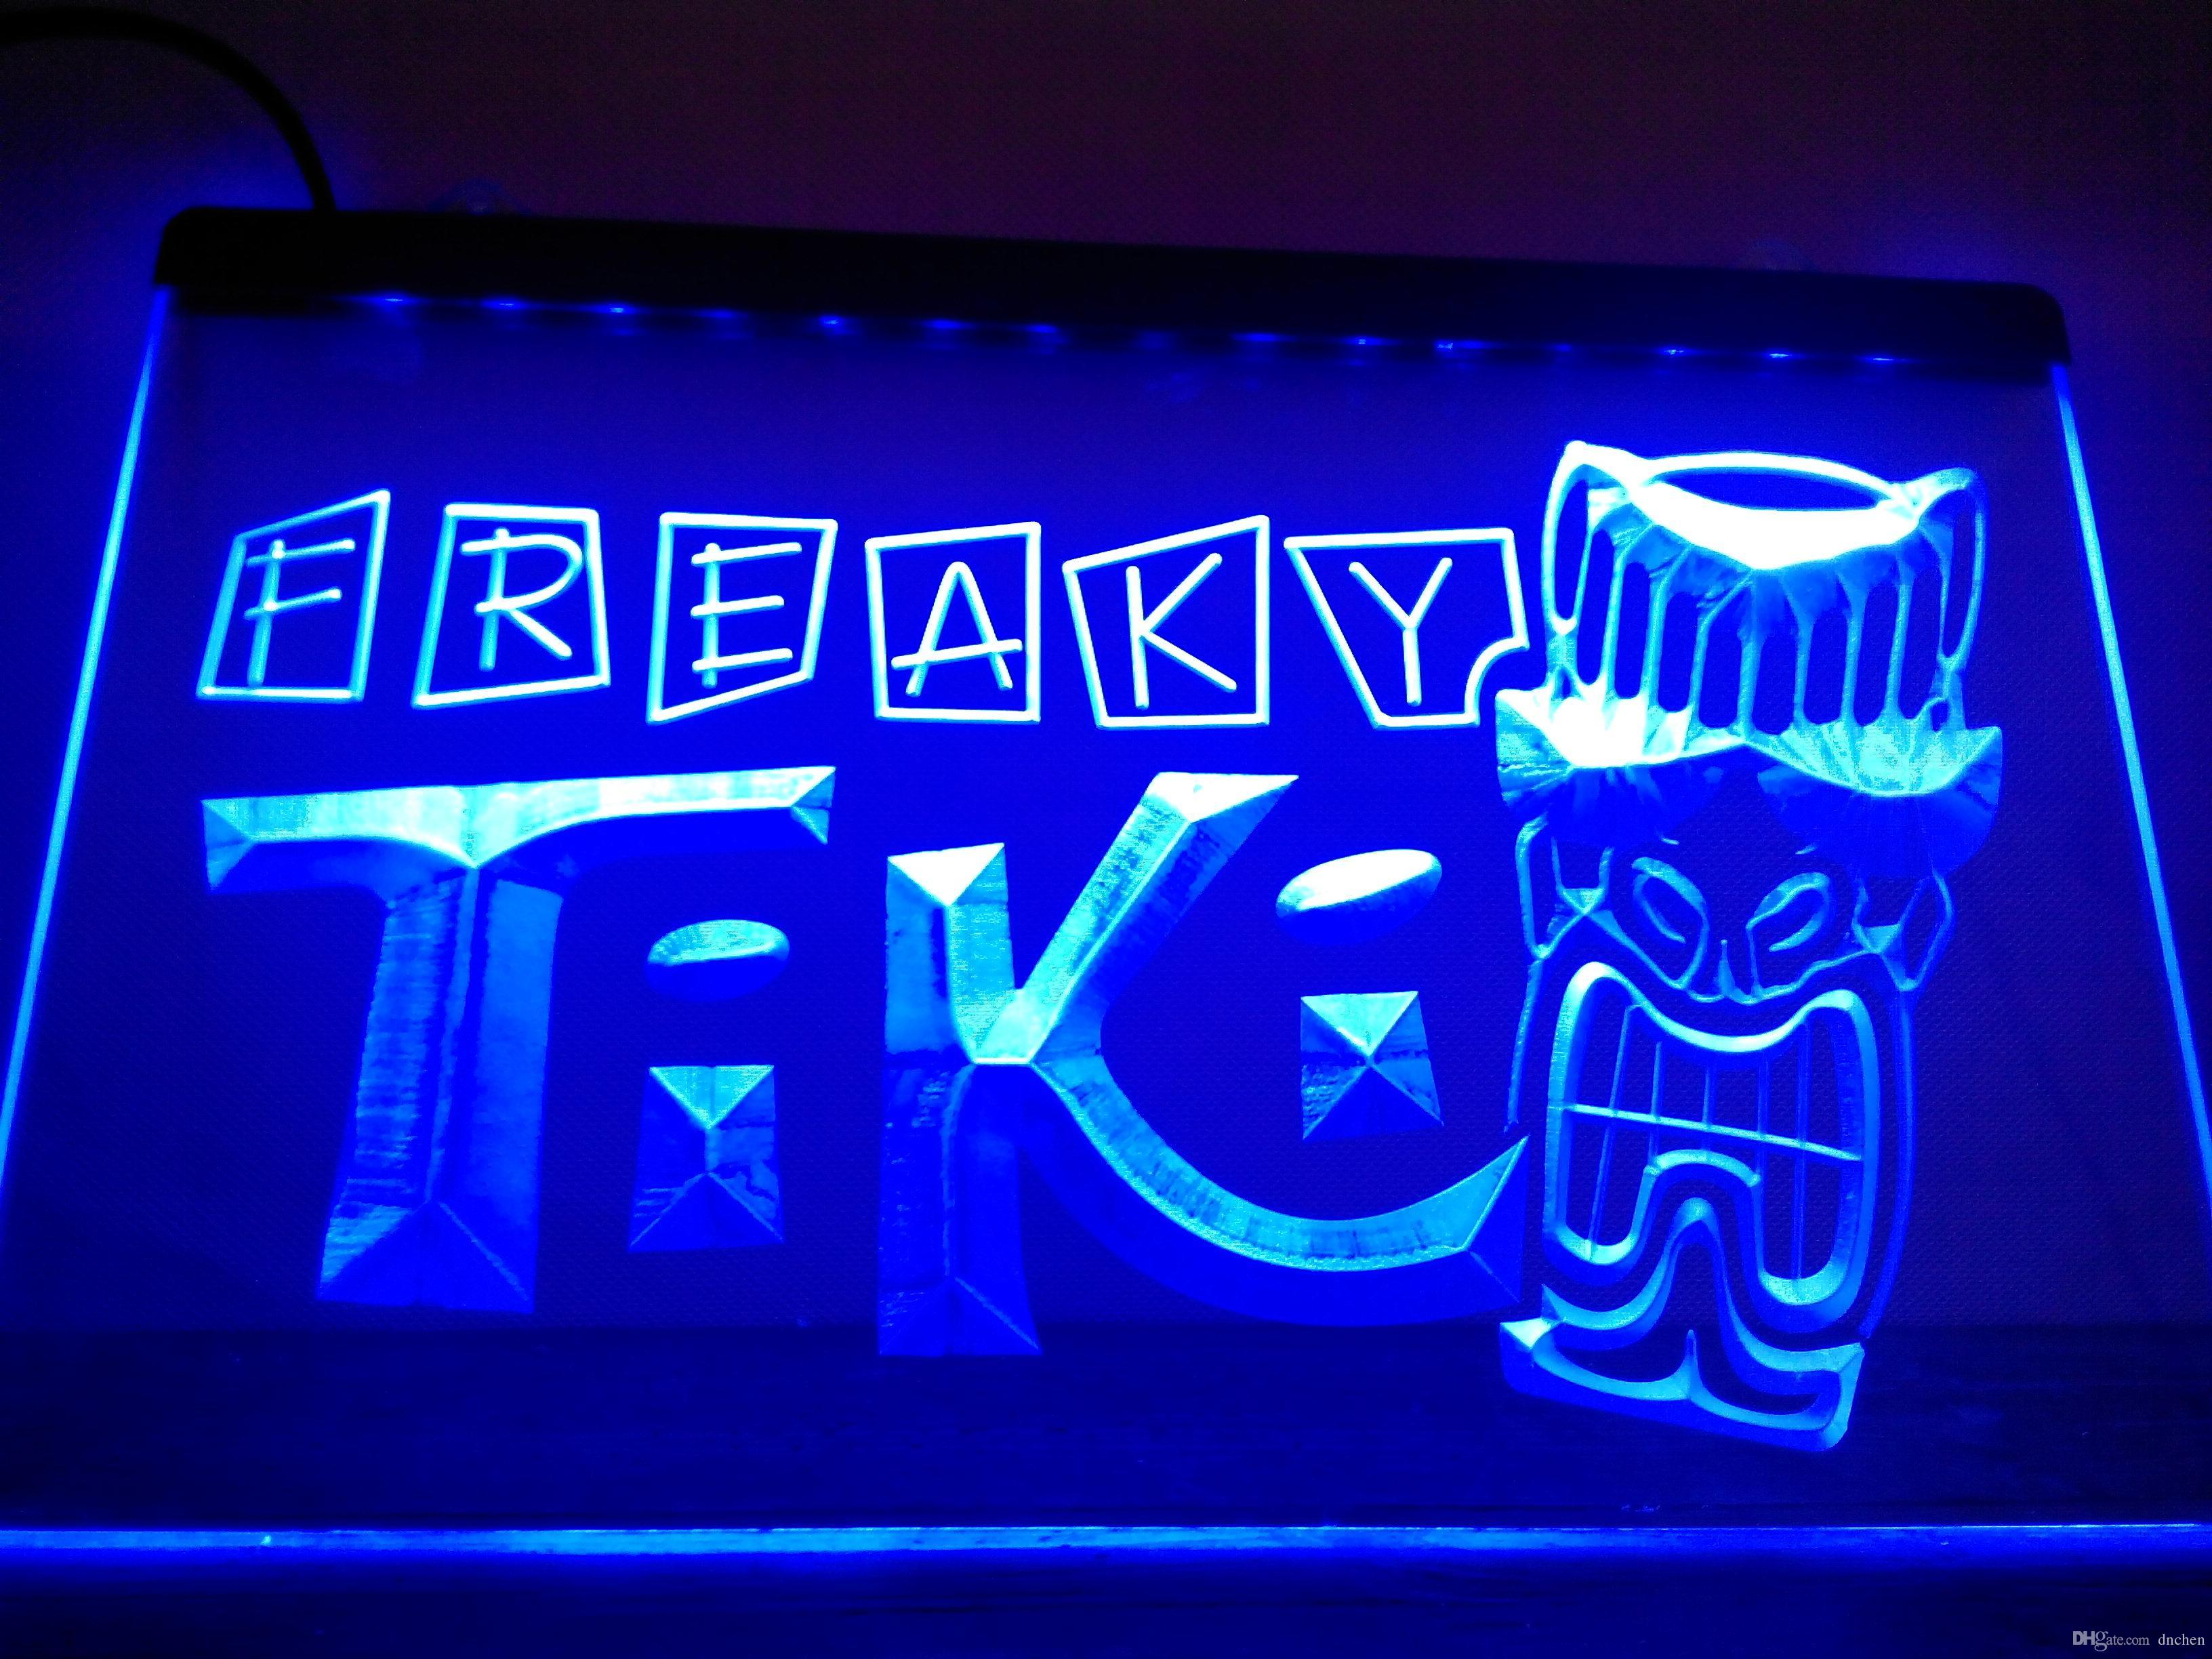 Lm092 b freaky tiki bar mask pub beer neon light signled light sign lm092 b freaky tiki bar mask pub beer neon light signled light sign bar signs open signs open signs acrylic neon light sign led sign online with mozeypictures Image collections